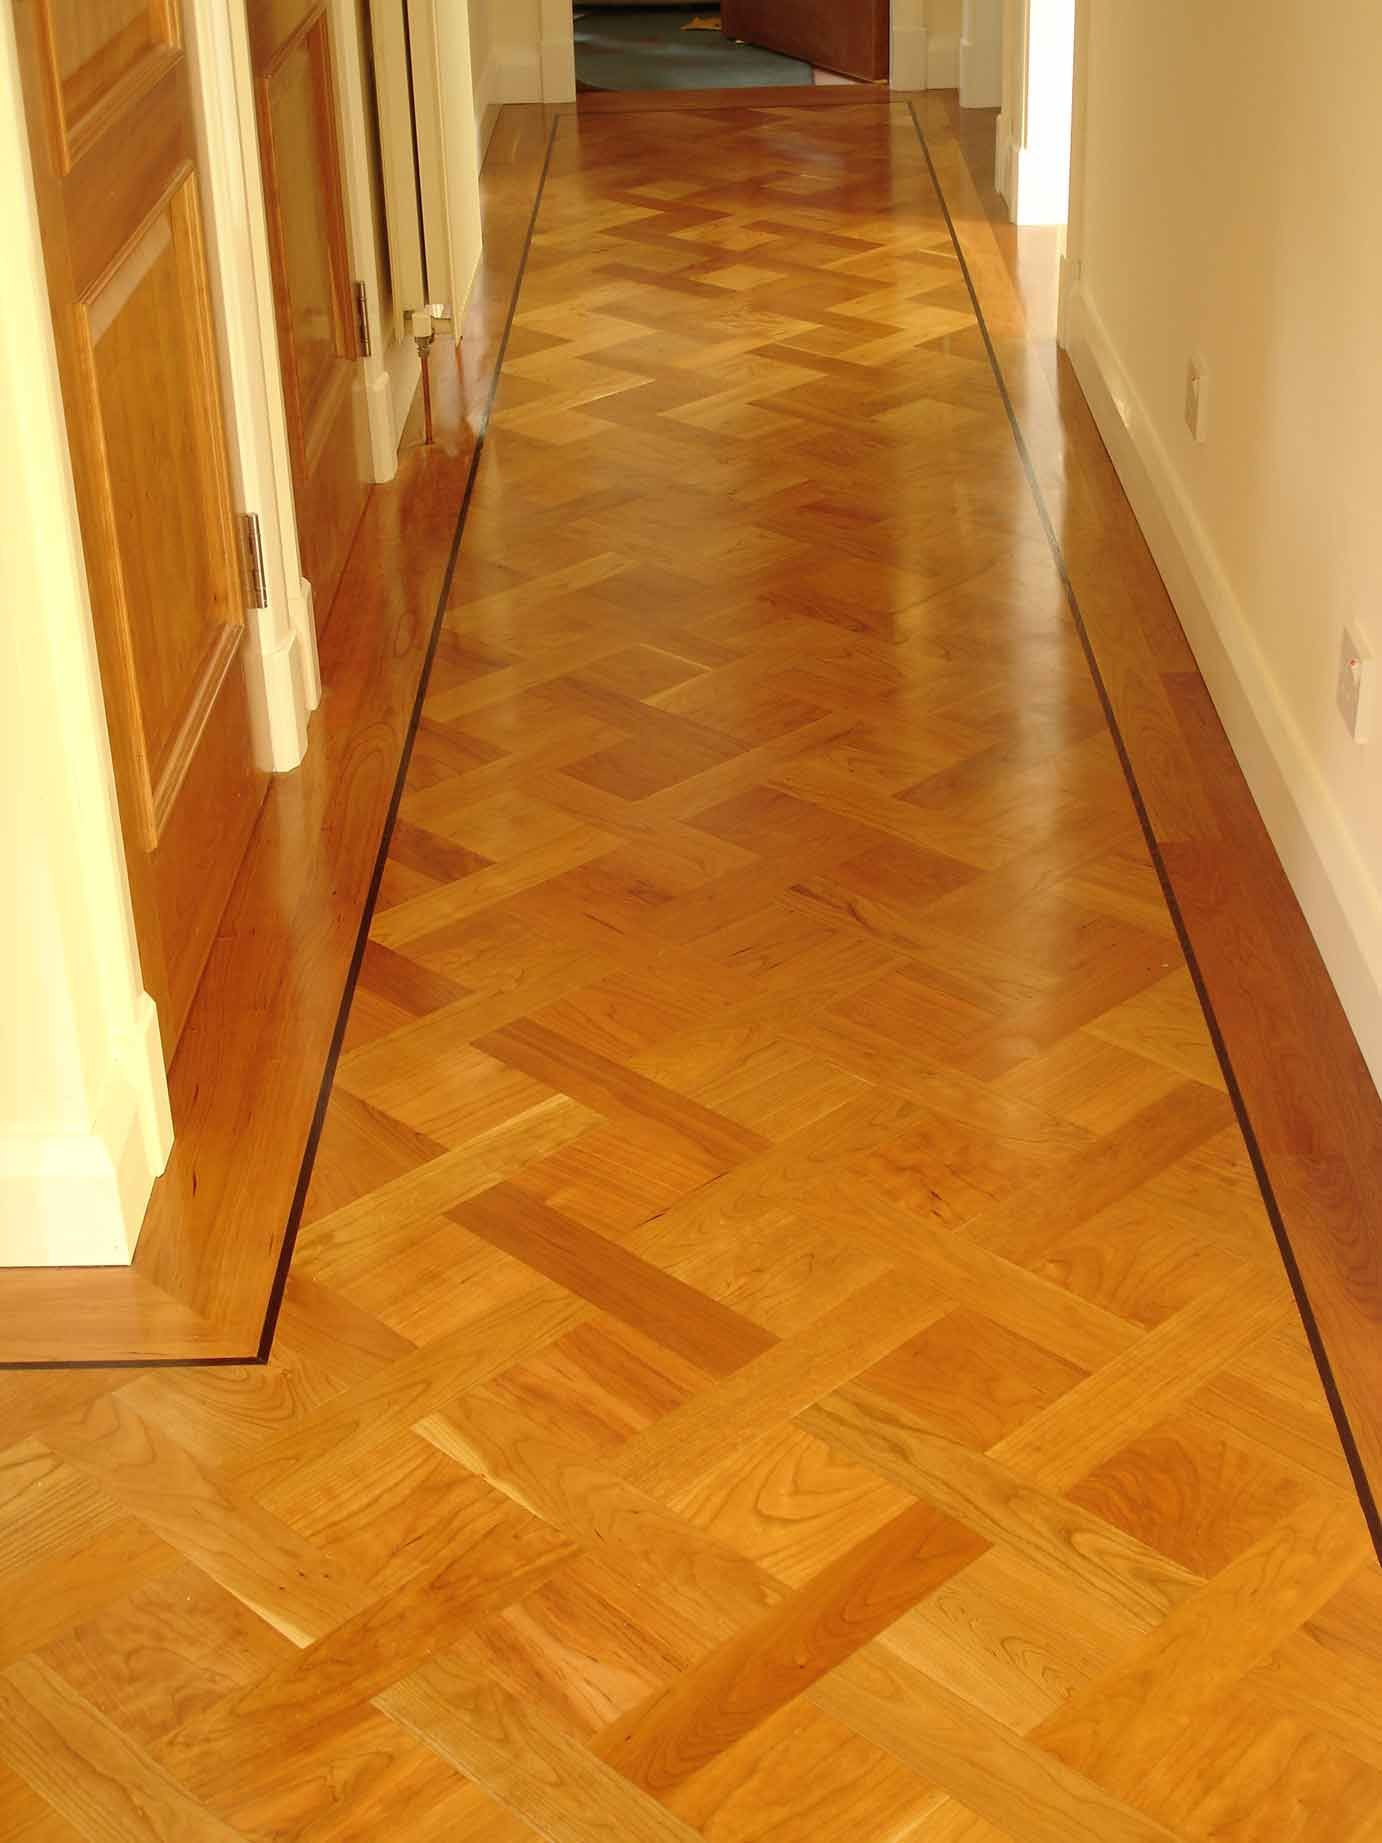 maple walnut hardwood flooring of david guntons hardwood floors hardwood flooring parquet for david guntons hardwood floors hardwood flooring parquet marquetry and boards especially wideboards